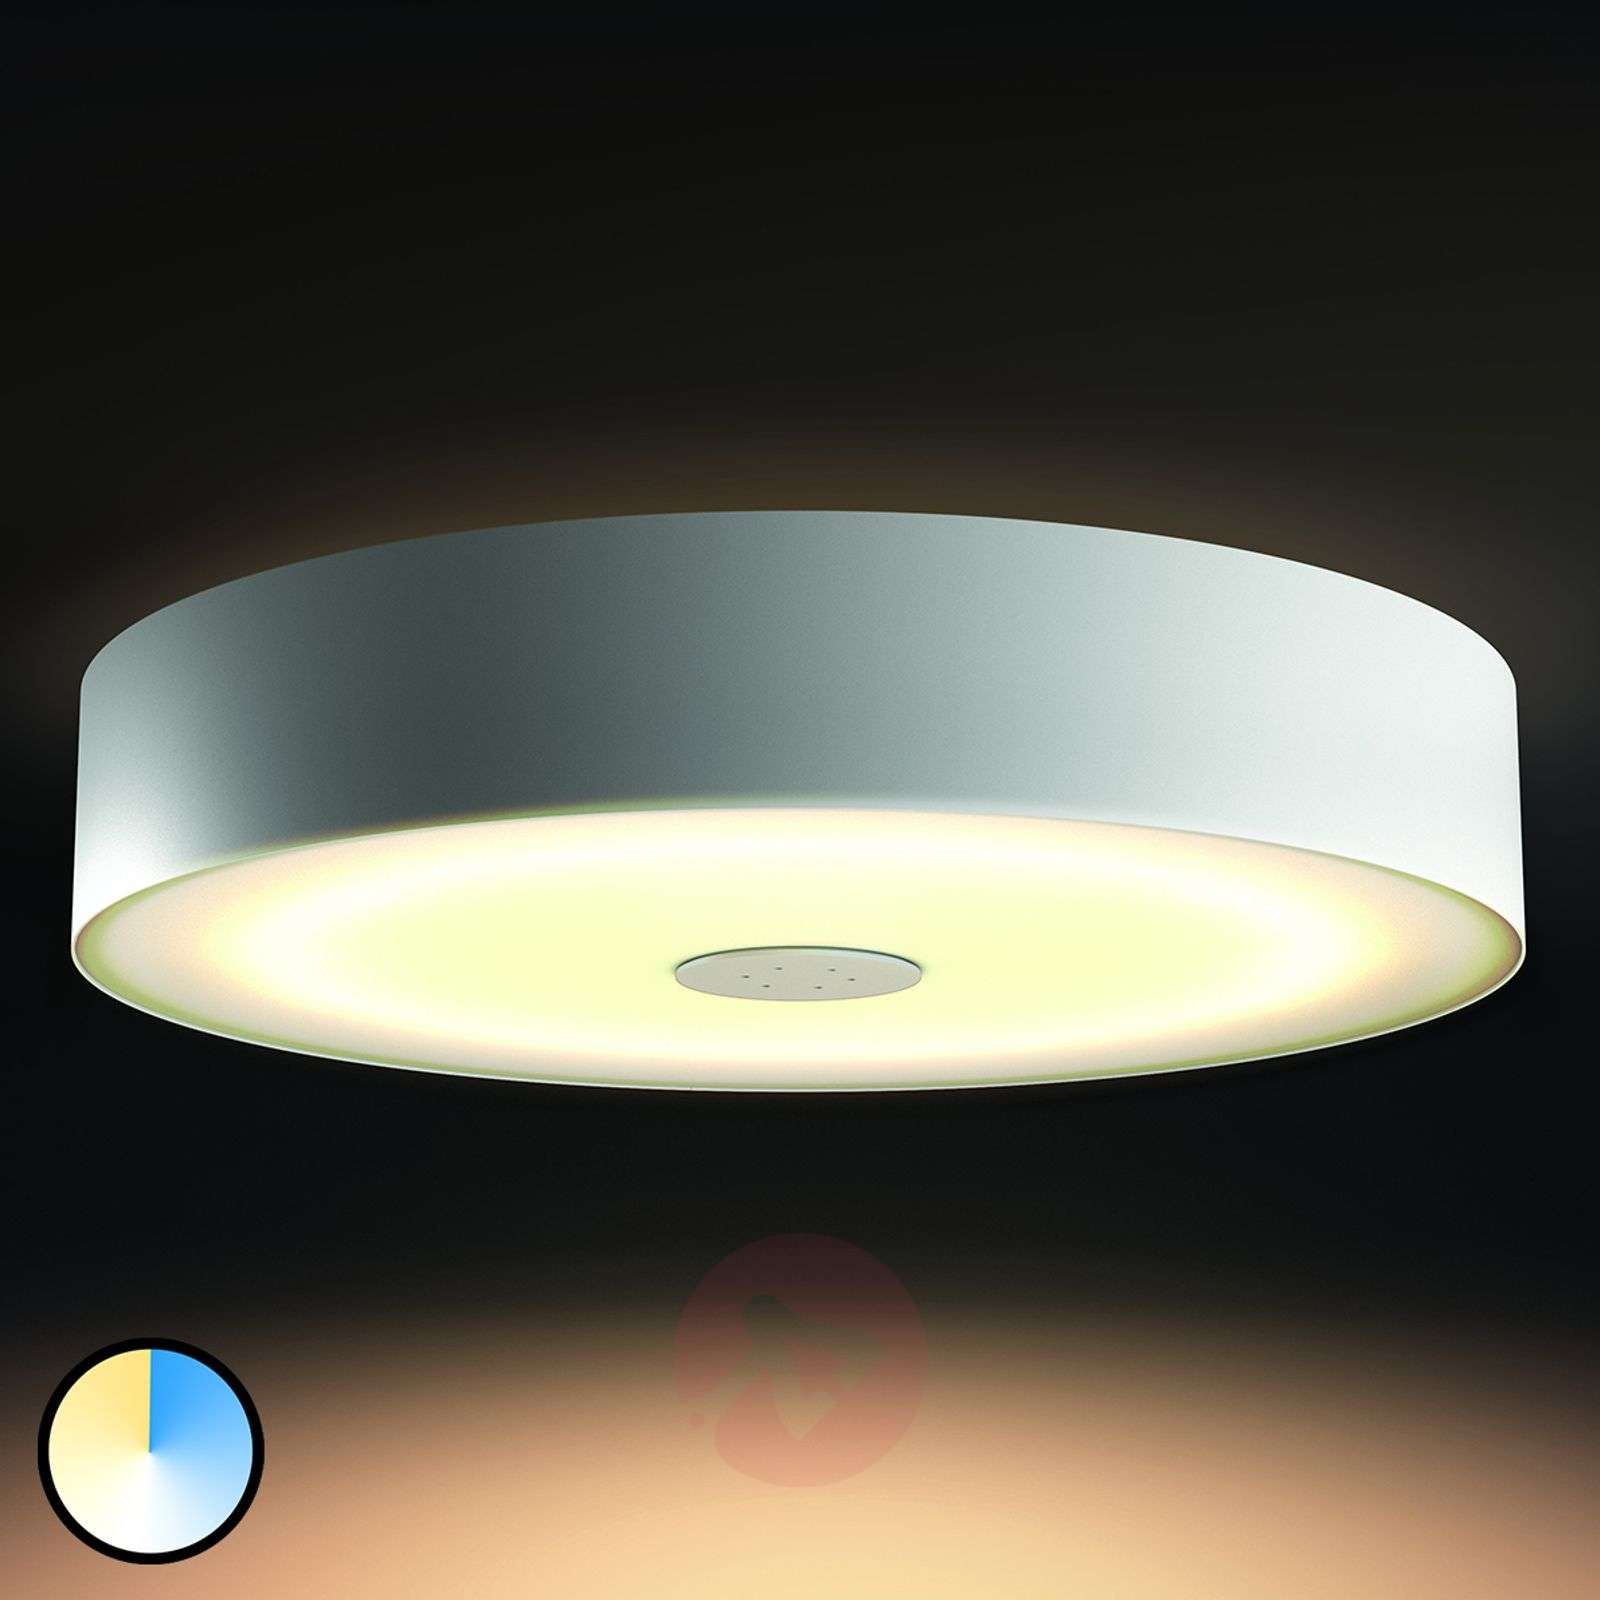 Philips Hue White Ambiance Fair Ceiling Lamp White Lights Ie